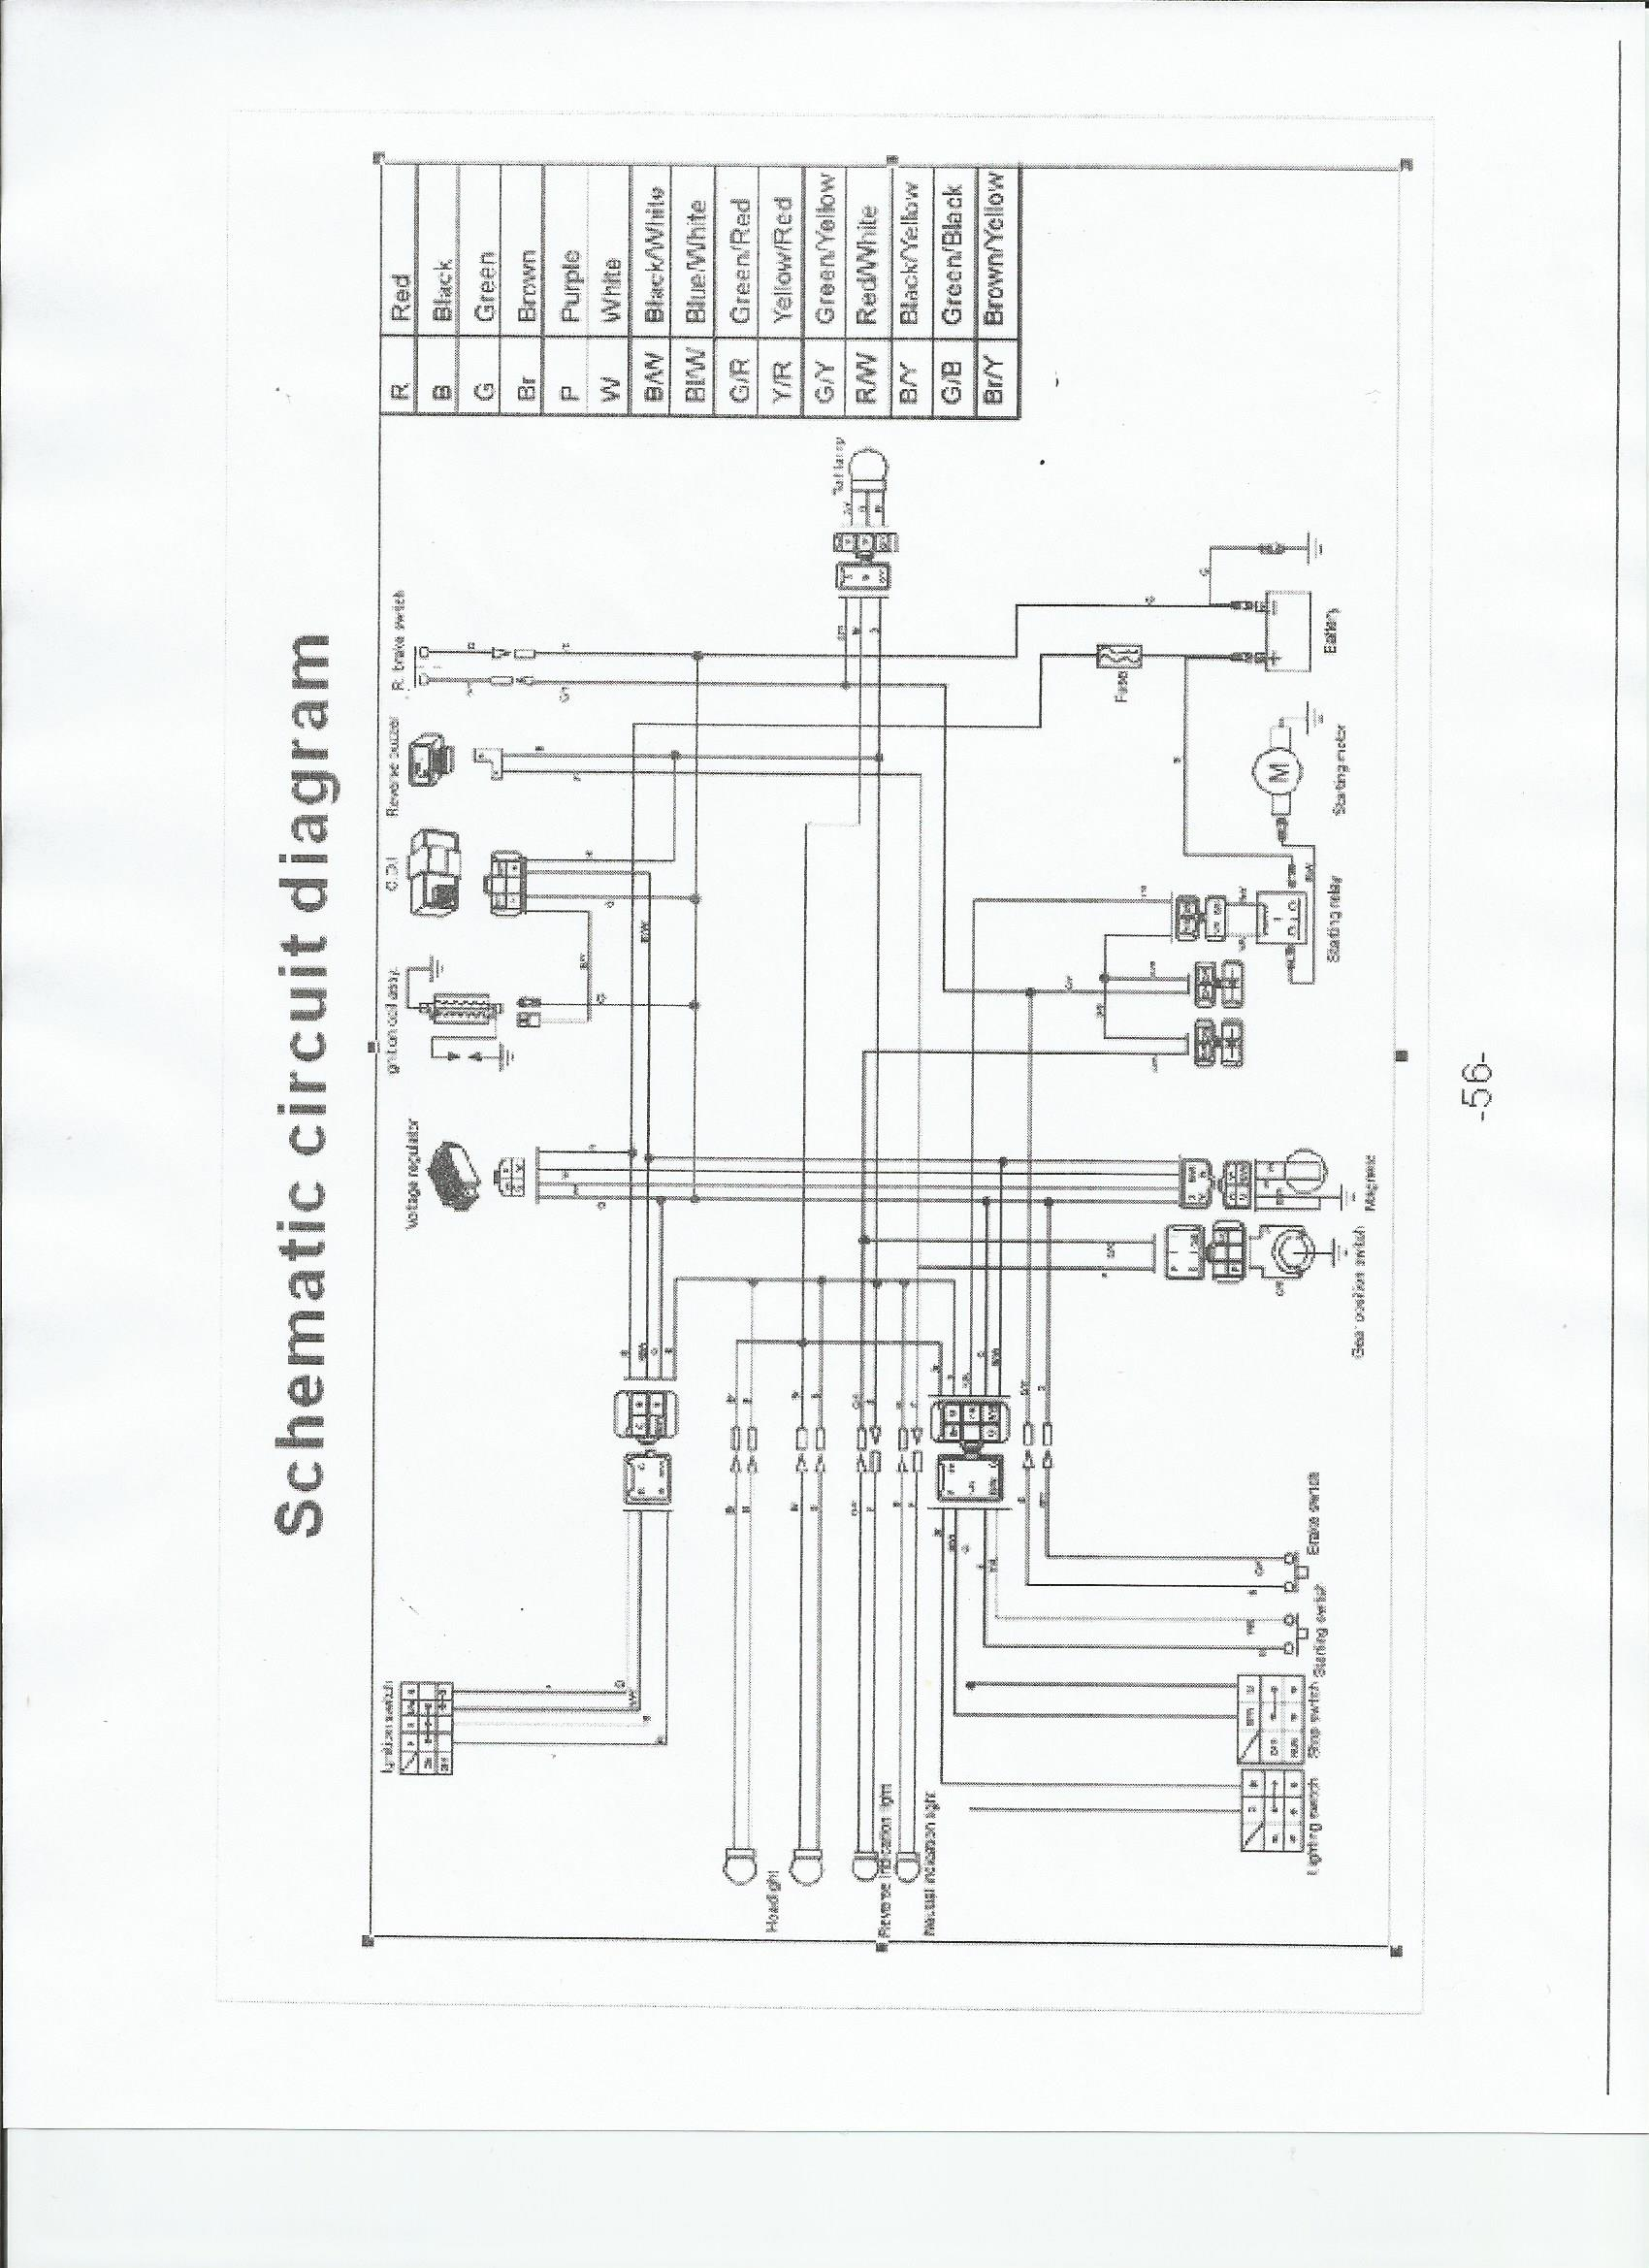 800h Ur29 Wiring Diagram 24 Images Honda 300ex Tao Schematicresized6652c915 Headlight 2000